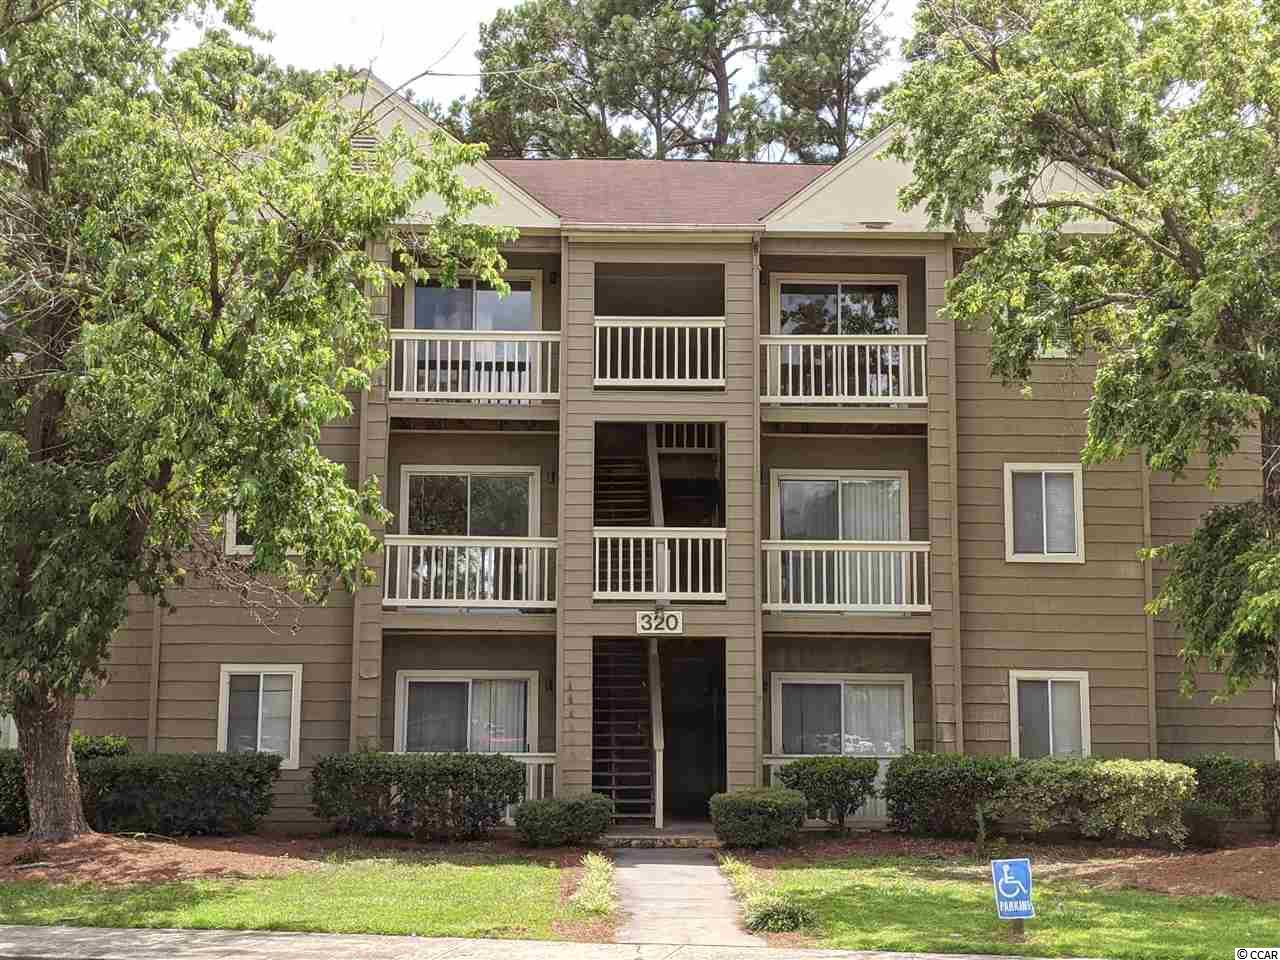 Desirable 2 bedroom 2 bathroom roughly 1100 sq ft unit on easy to access 1st floor in the Myrtle Greens association in Conway. Enjoy the many community amenities: Pool with lounging areas, tennis court, picnic area, club house, water features and more. Well laid out unit with front and rear patios, large storage area attached off rear patio too! Private views of green area and water off the back patio area to relax on. Great floor plan with both bedrooms connecting to both bathrooms from bedrooms. Great for kids, guests or family to stay in and enjoy! Additional storage closets in entry hallway and back patio. Huge master bedroom walk-in closet is a great feature. Light and bright kitchen with lots of prep space to enjoy making meals in. Open living room and dining areas make this floor plan functional well. This unit for the price is a must see to appreciate!